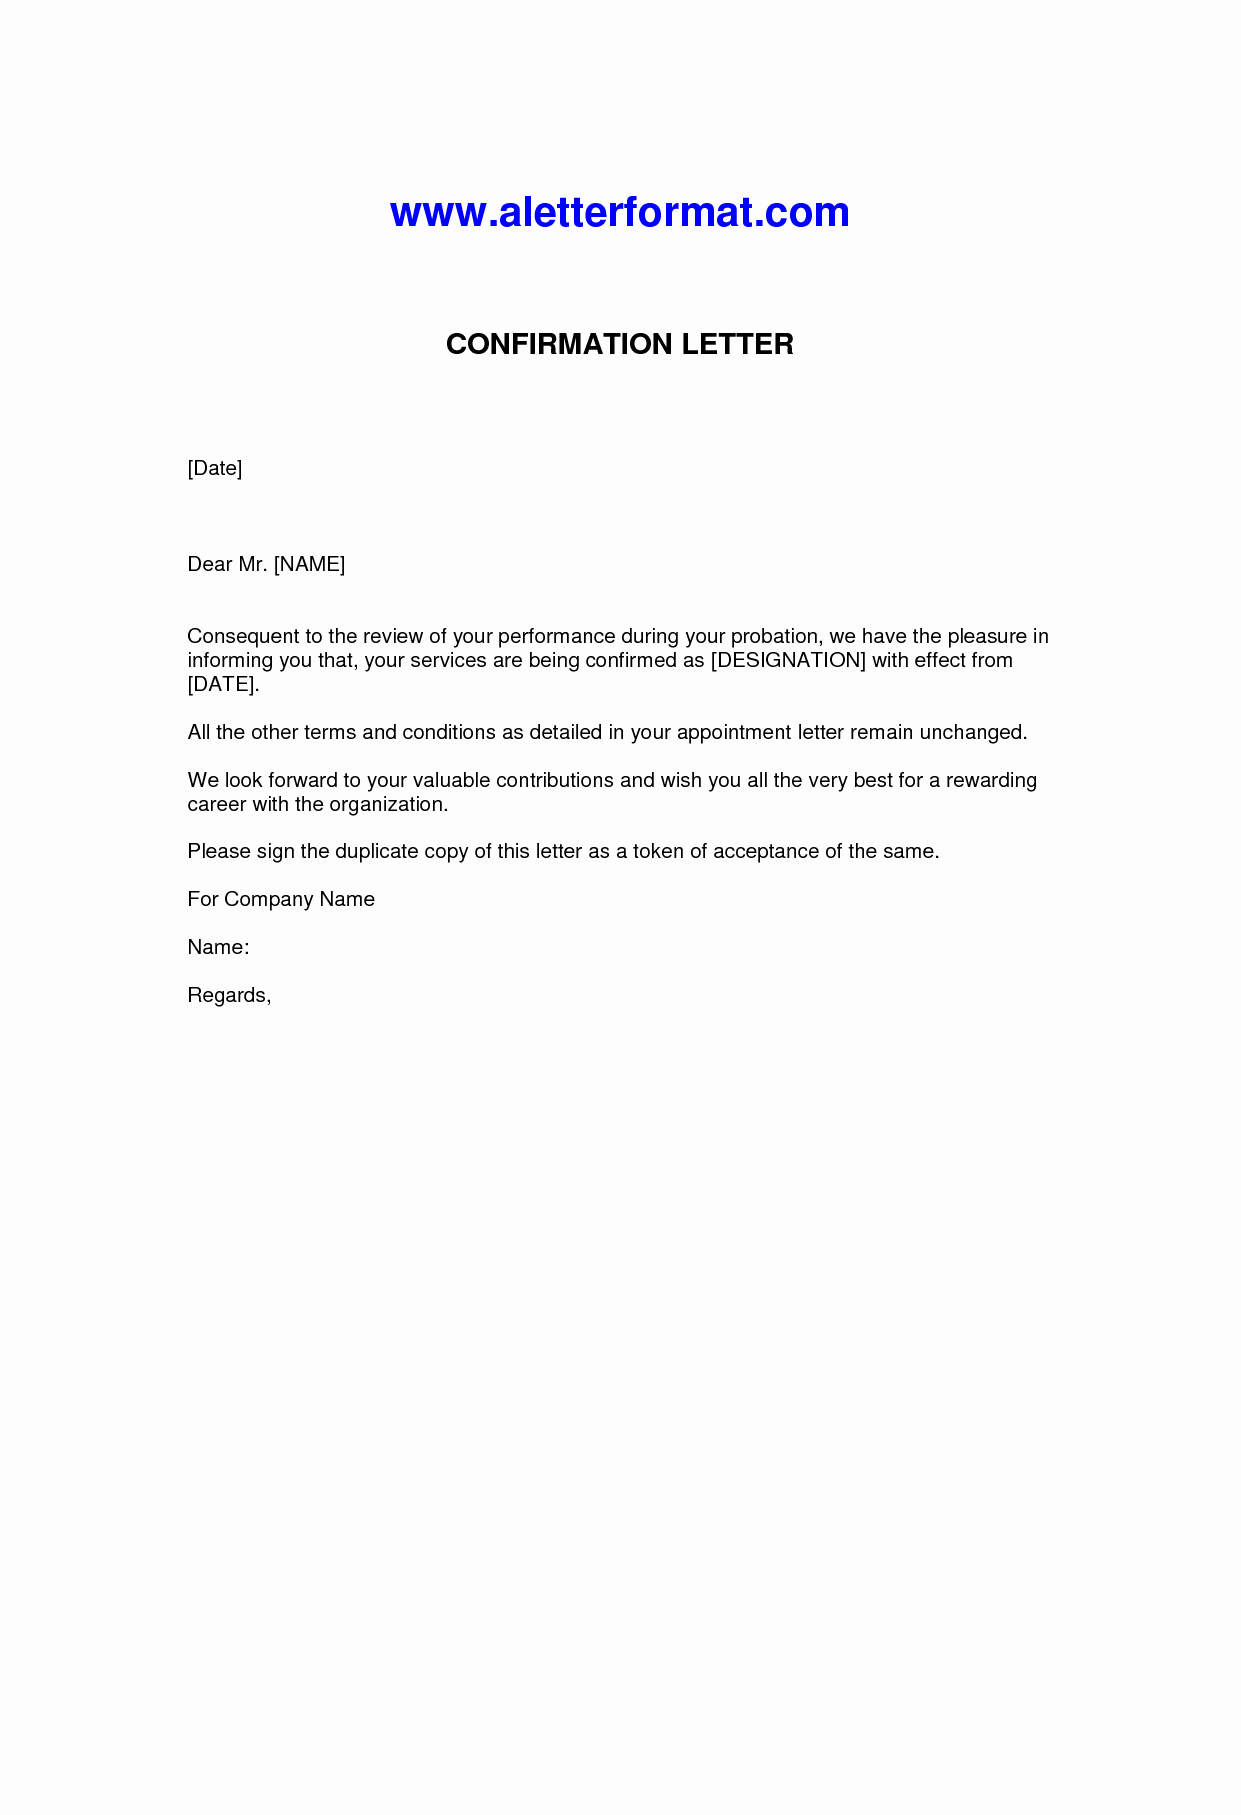 Free Printable Employment Verification Letter Awesome Letter Verification Employment Free Printable